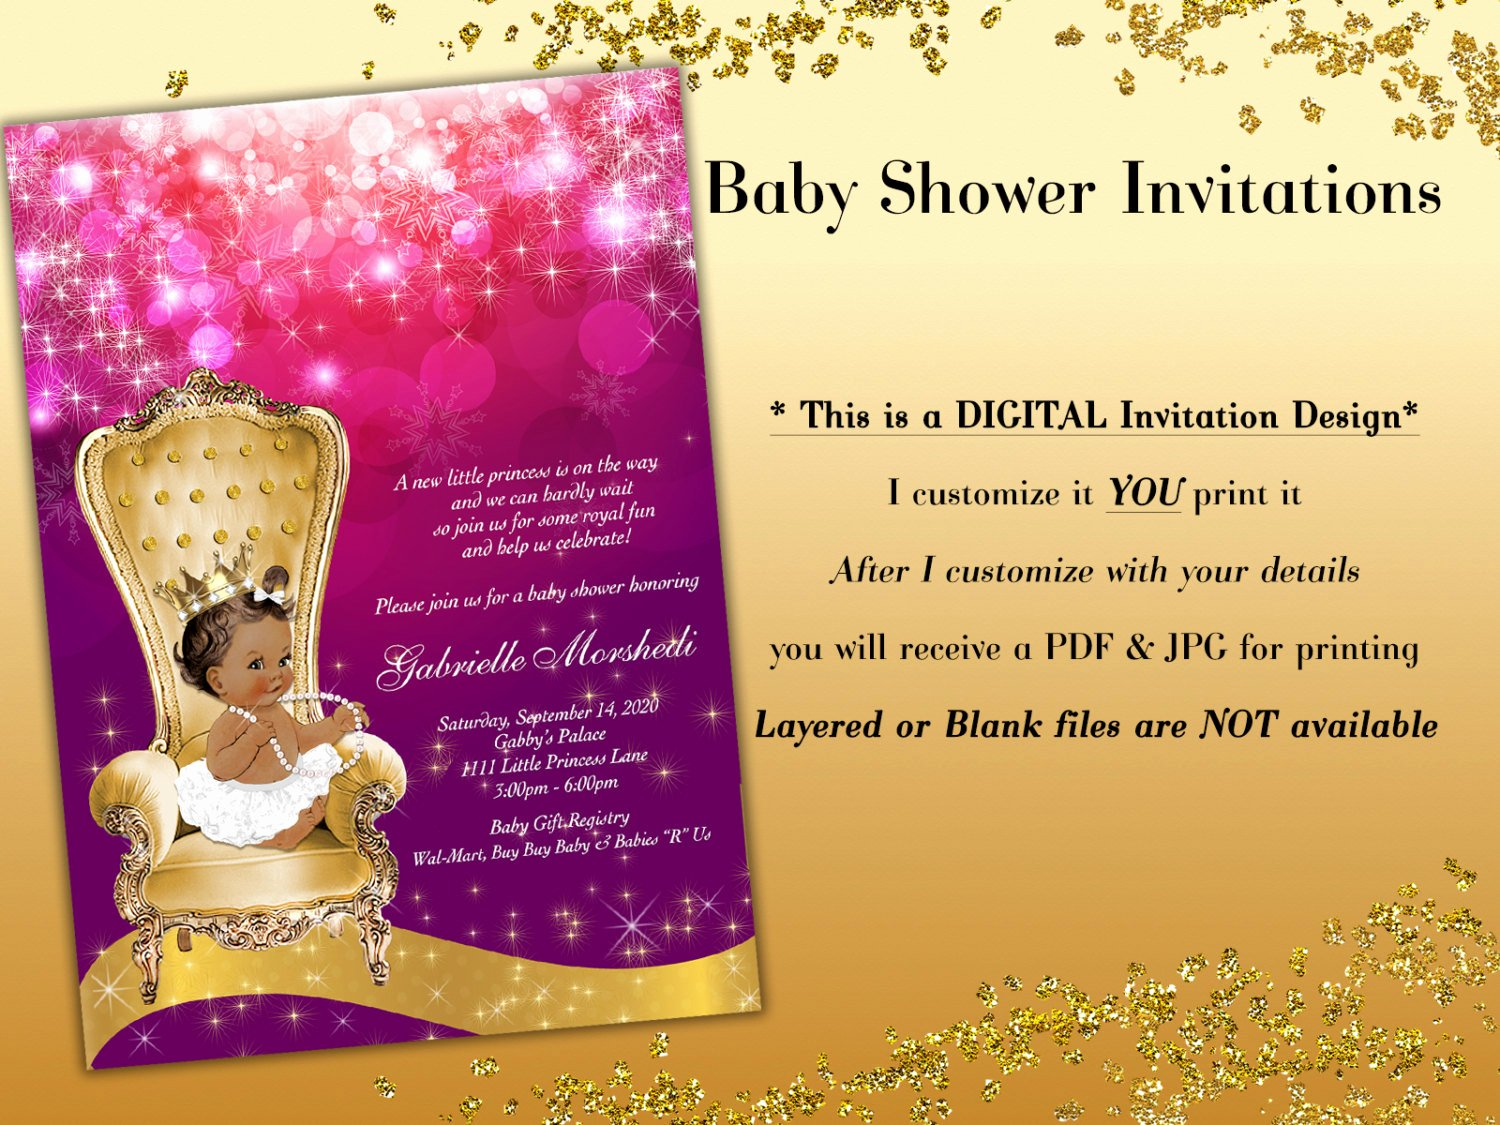 Royal Baby Shower Invitations Inspirational Baby Shower Invitation Royal Baby Shower Invitations